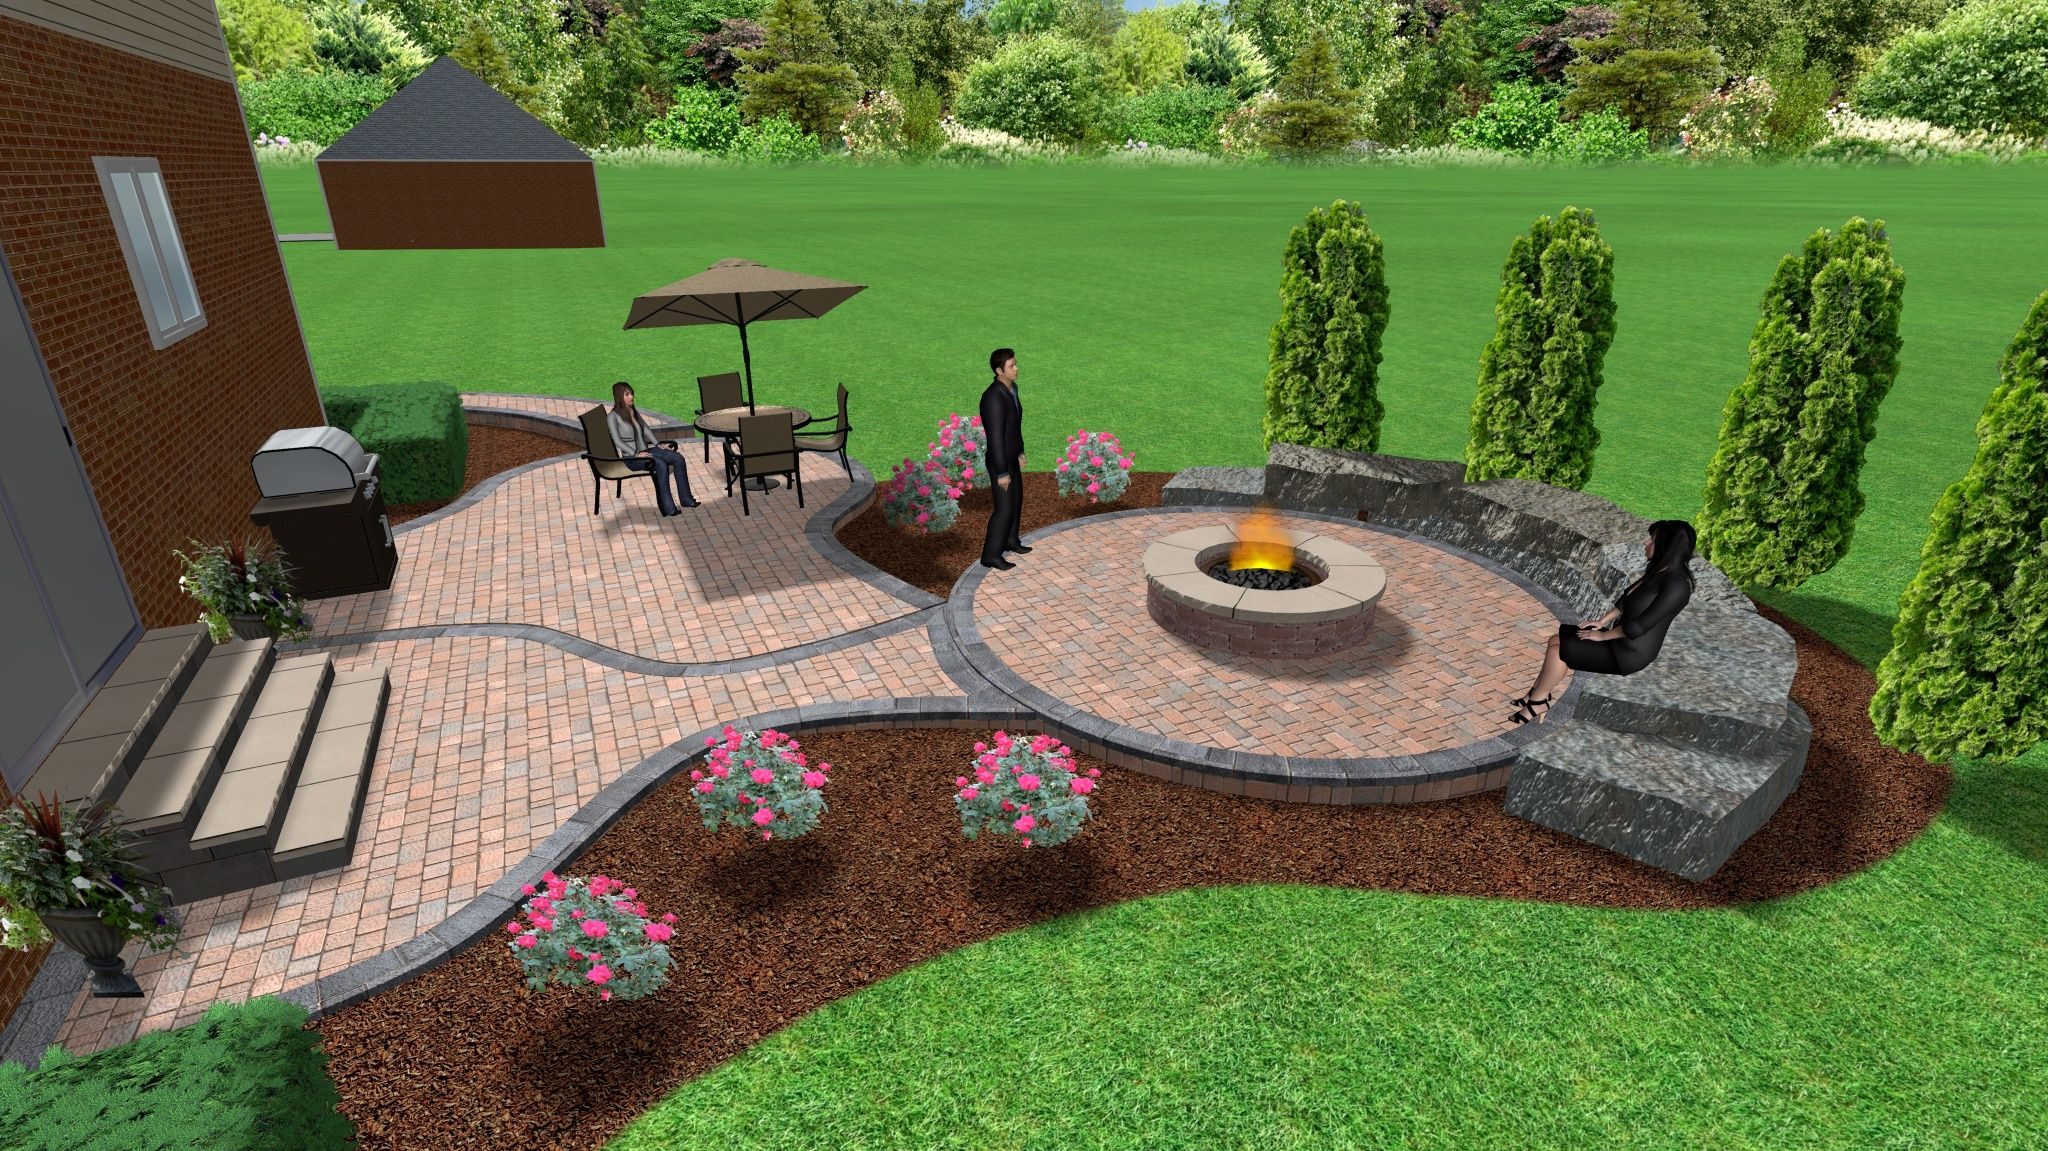 Brick Paver Patio And Fire Pit